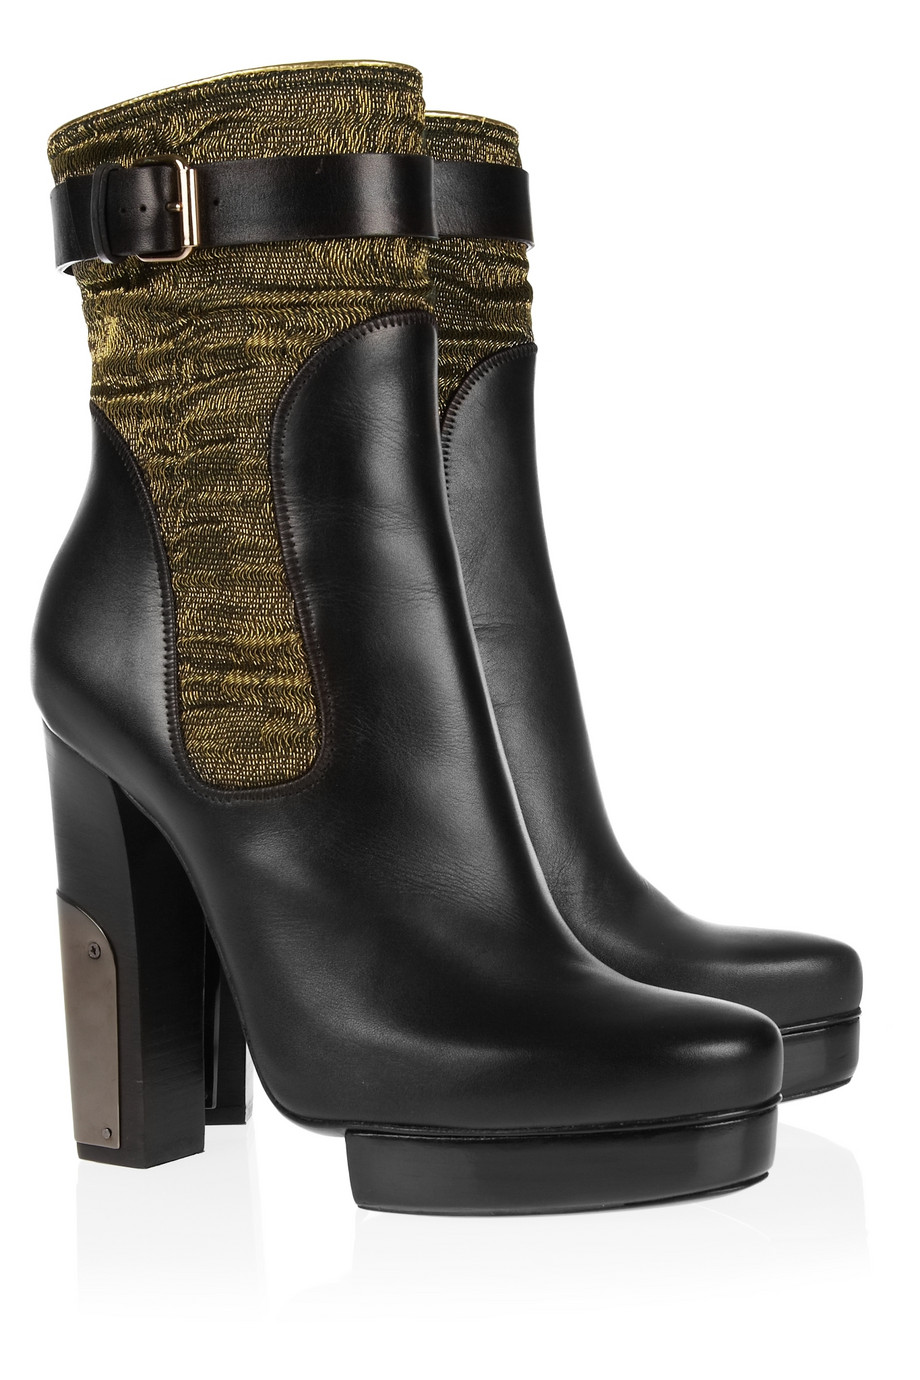 Lanvin Leather And Lurex Boots In Black Lyst